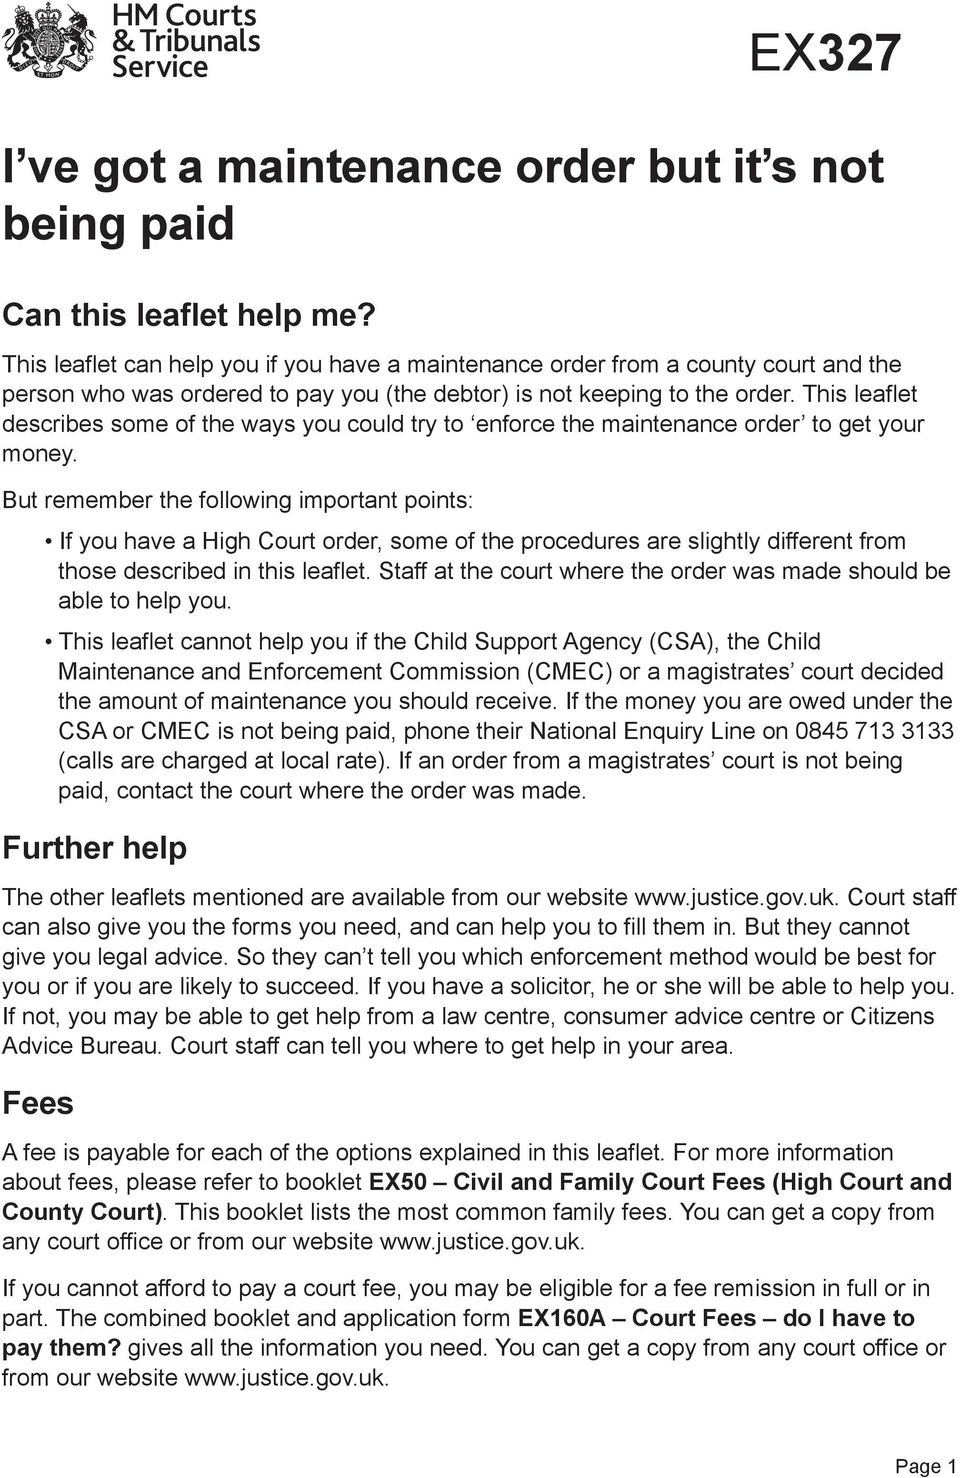 This leaflet describes some of the ways you could try to enforce the maintenance order to get your money.